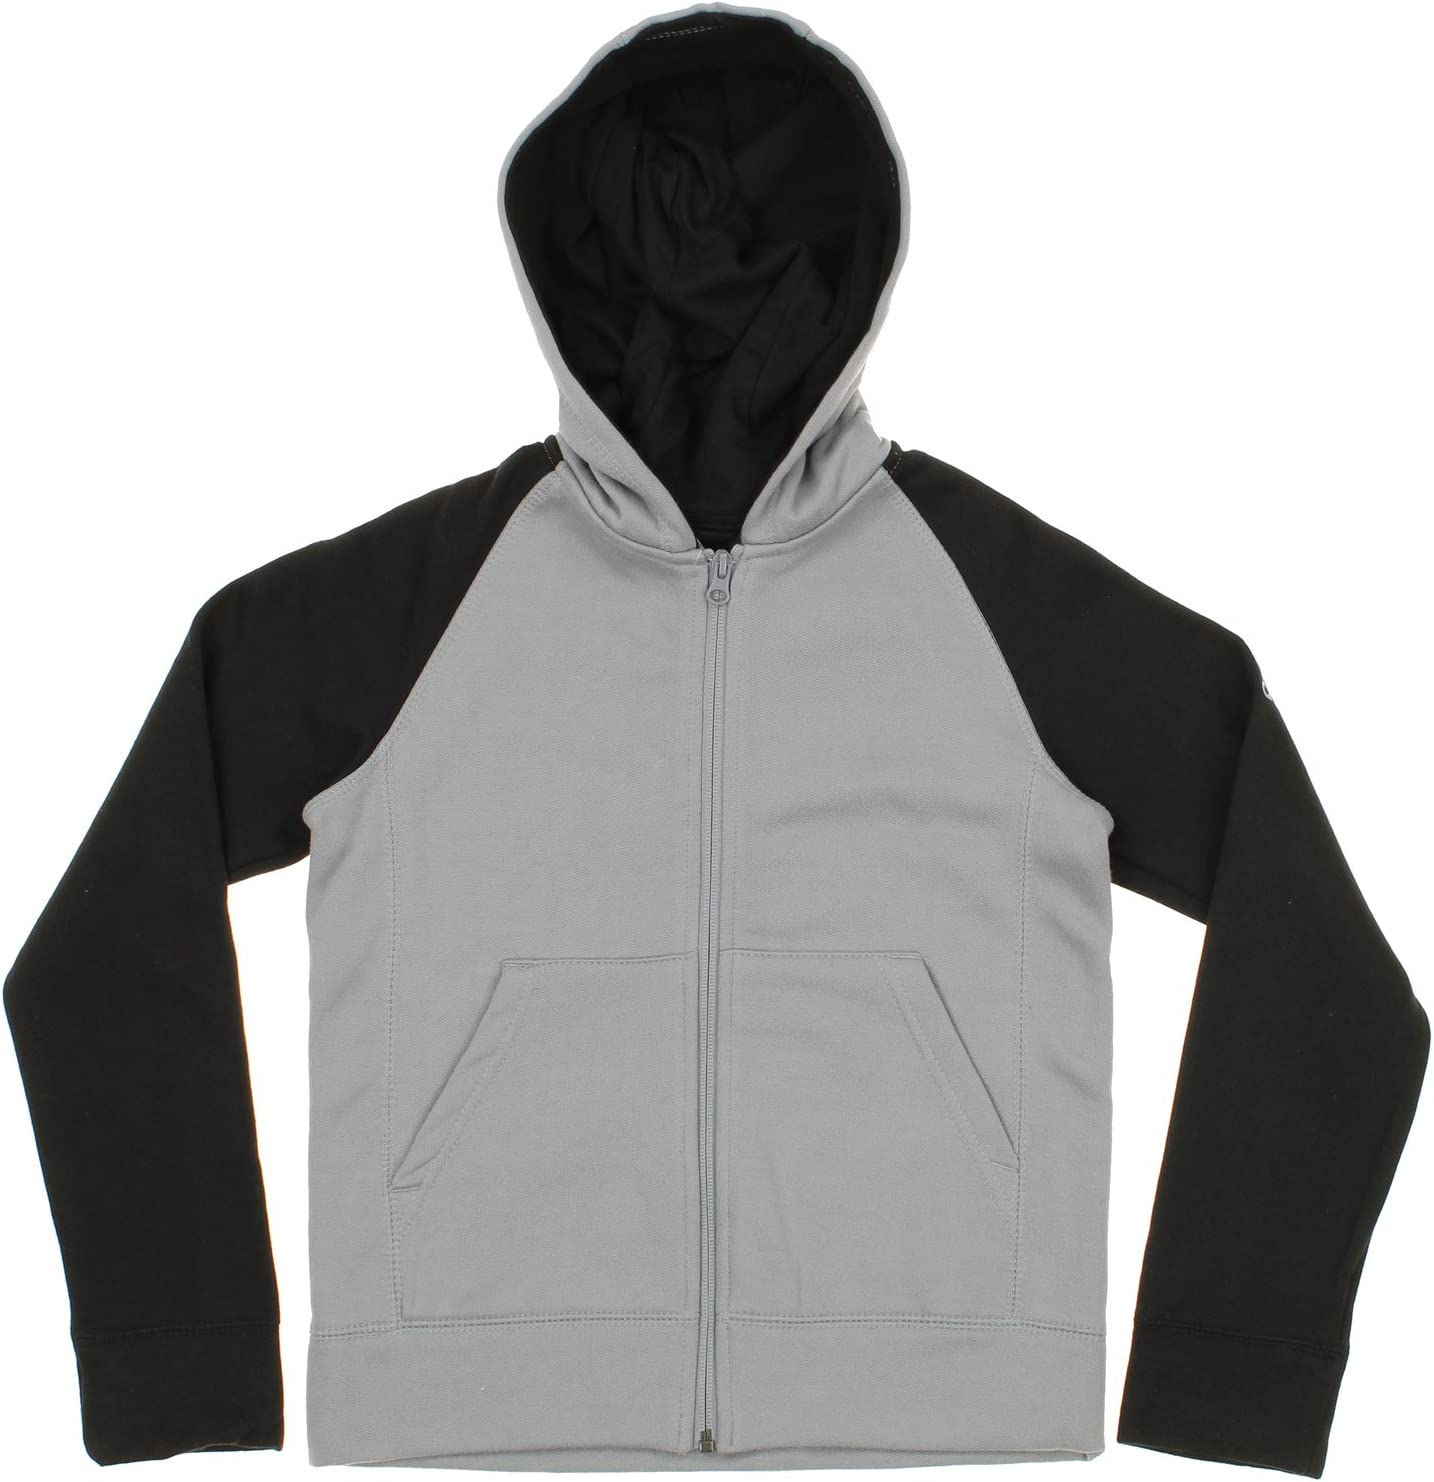 adidas Youth Boy's Full-Zip Contrast Option Translated wholesale Sleeve Color Hoodie